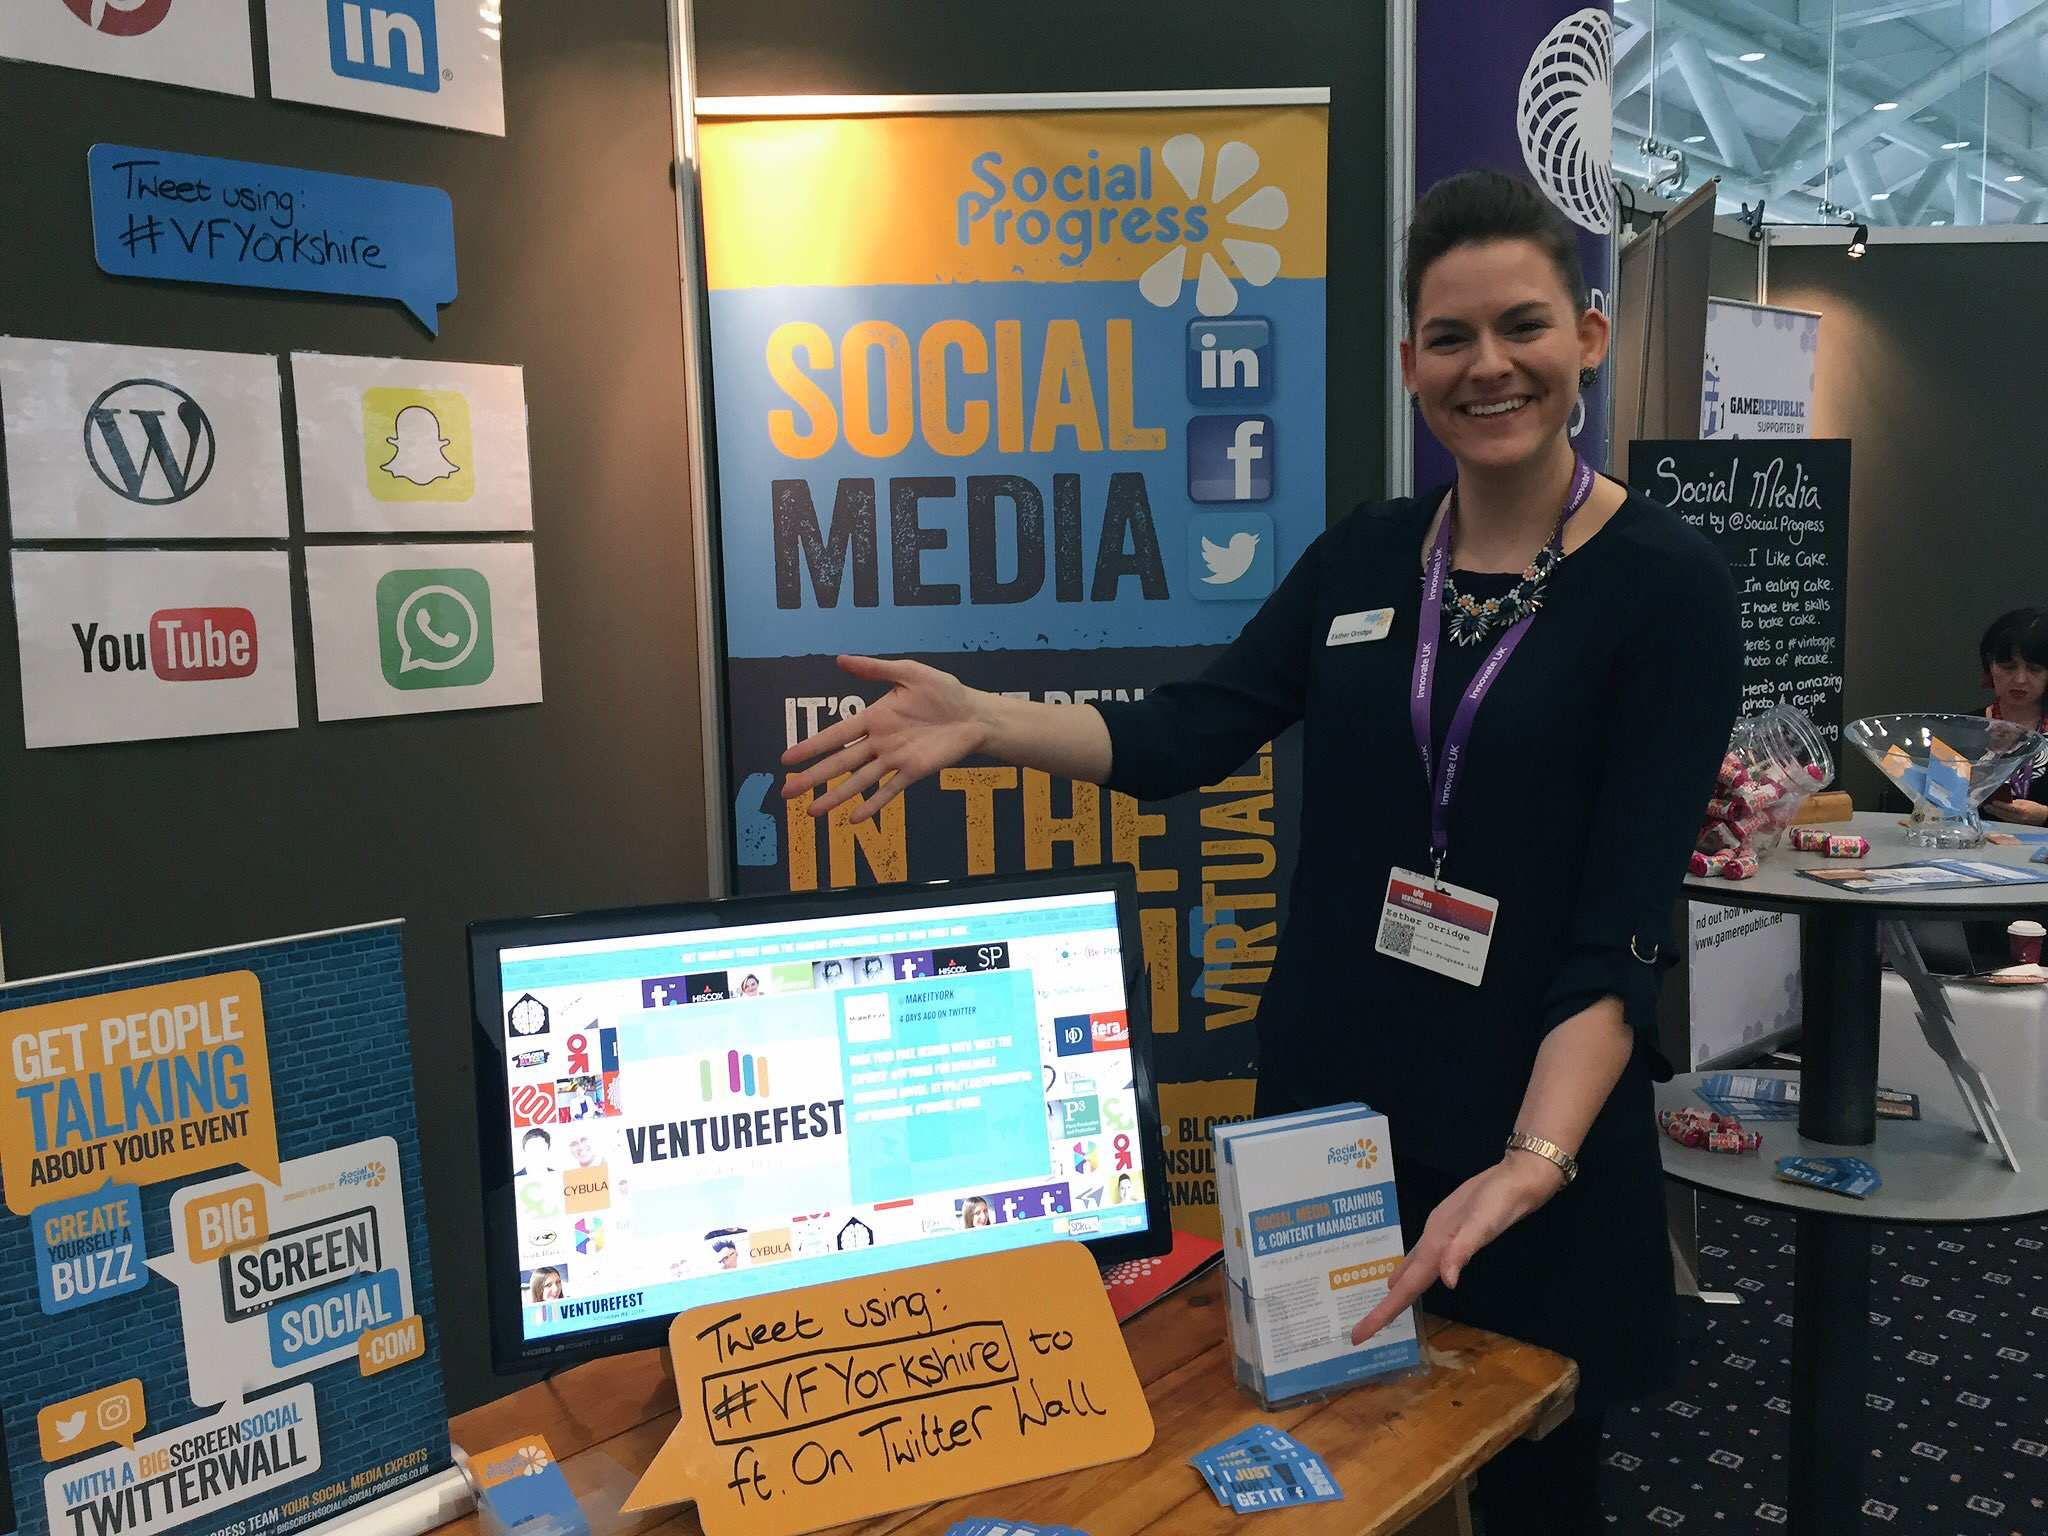 Social Progress Ltd - Venturefest Yorkshire 2016 - Big Screen Social - Social Media Training Yorkshire - Twitter Wall